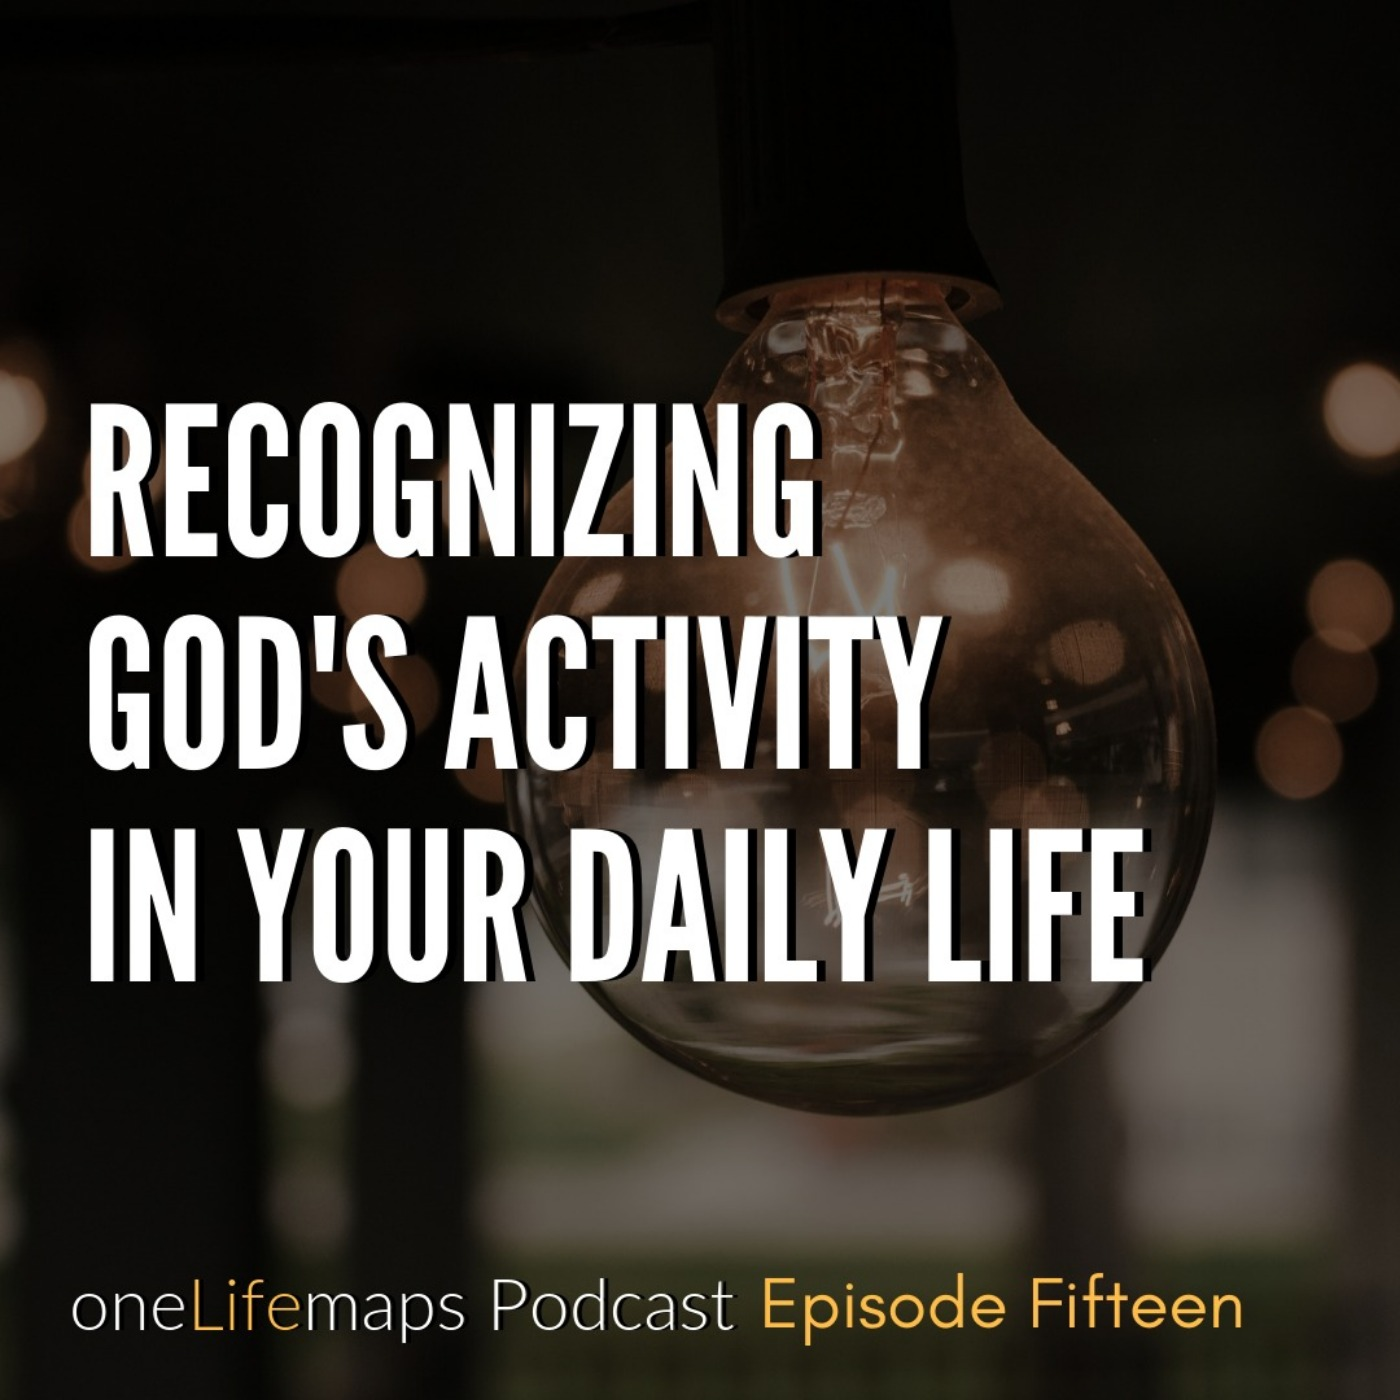 Recognizing God's Activity in Your Daily Life